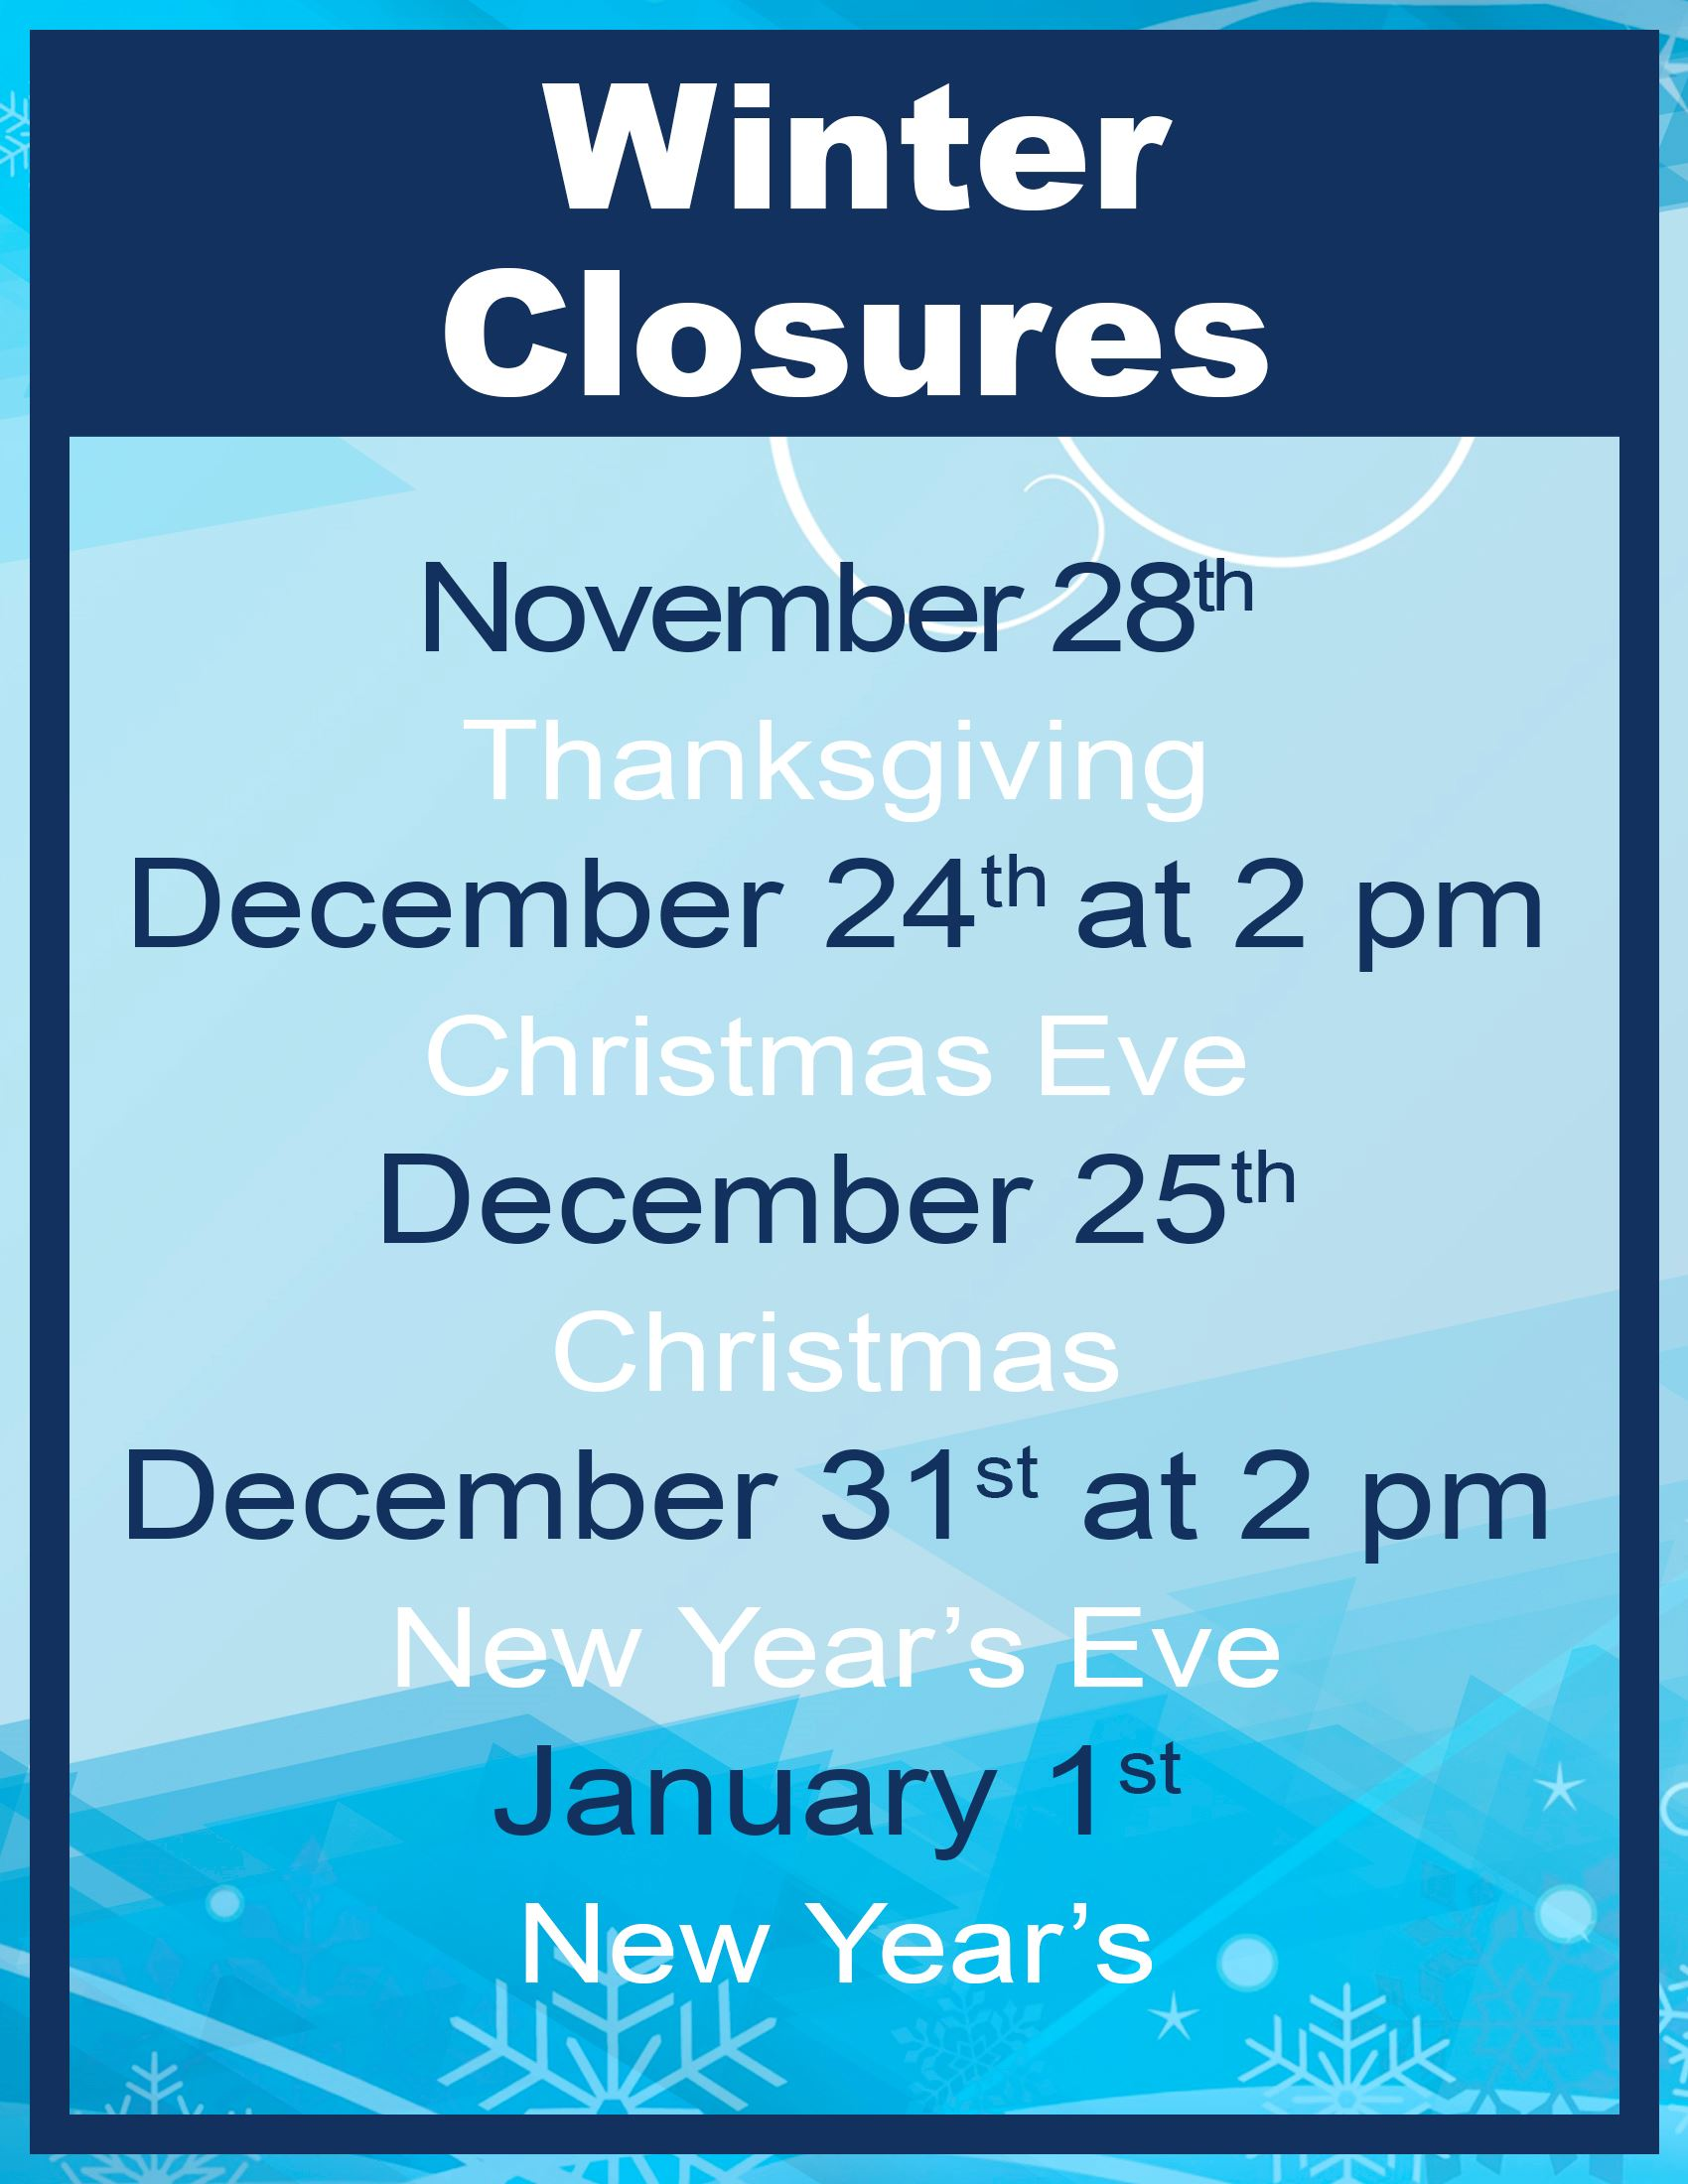 Winter Closures 19